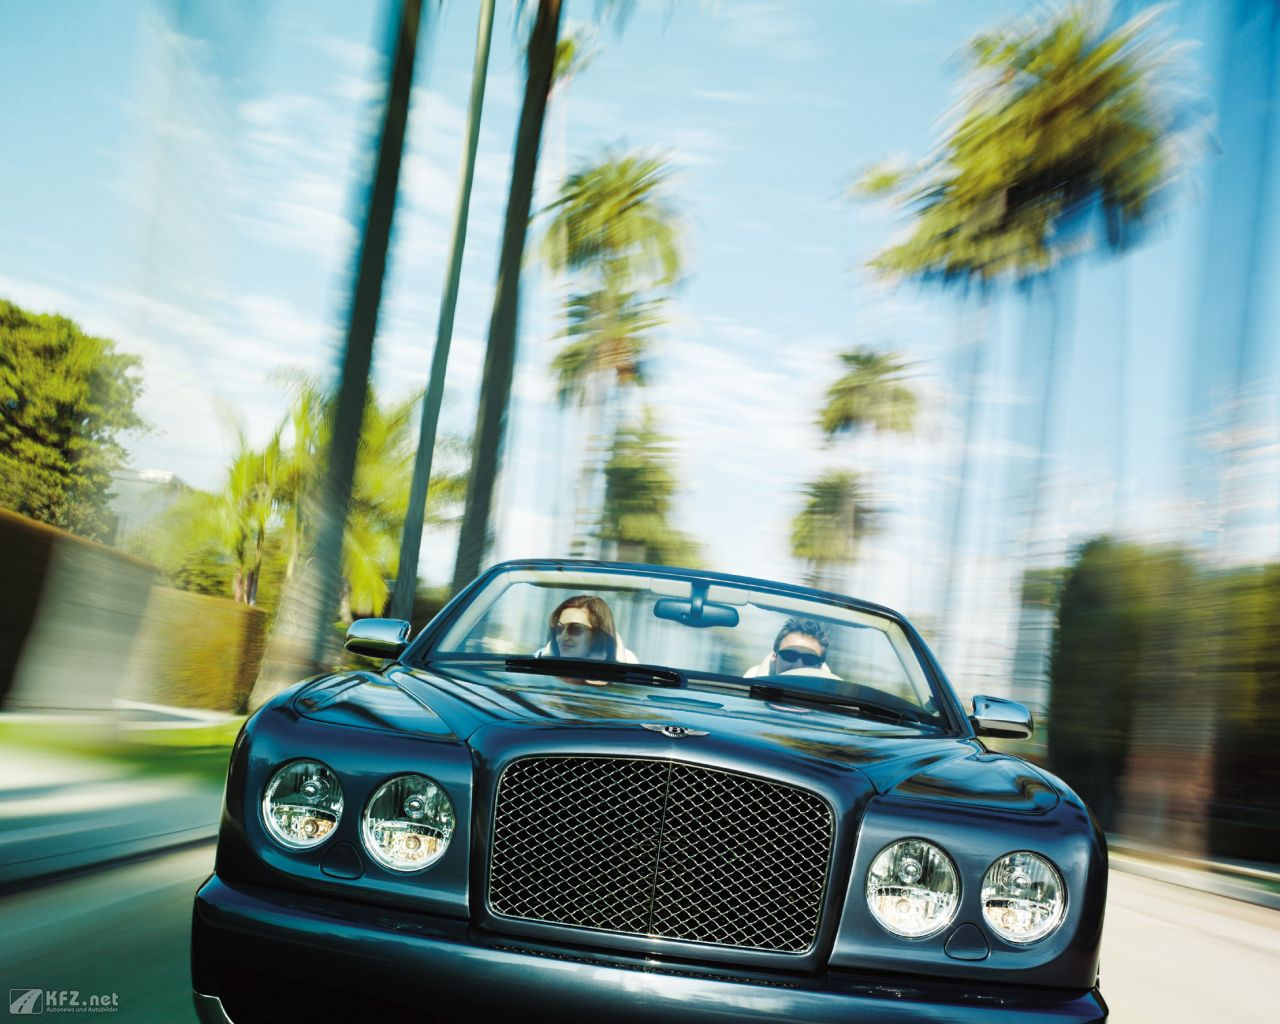 bentley-azure-1280x1024-4